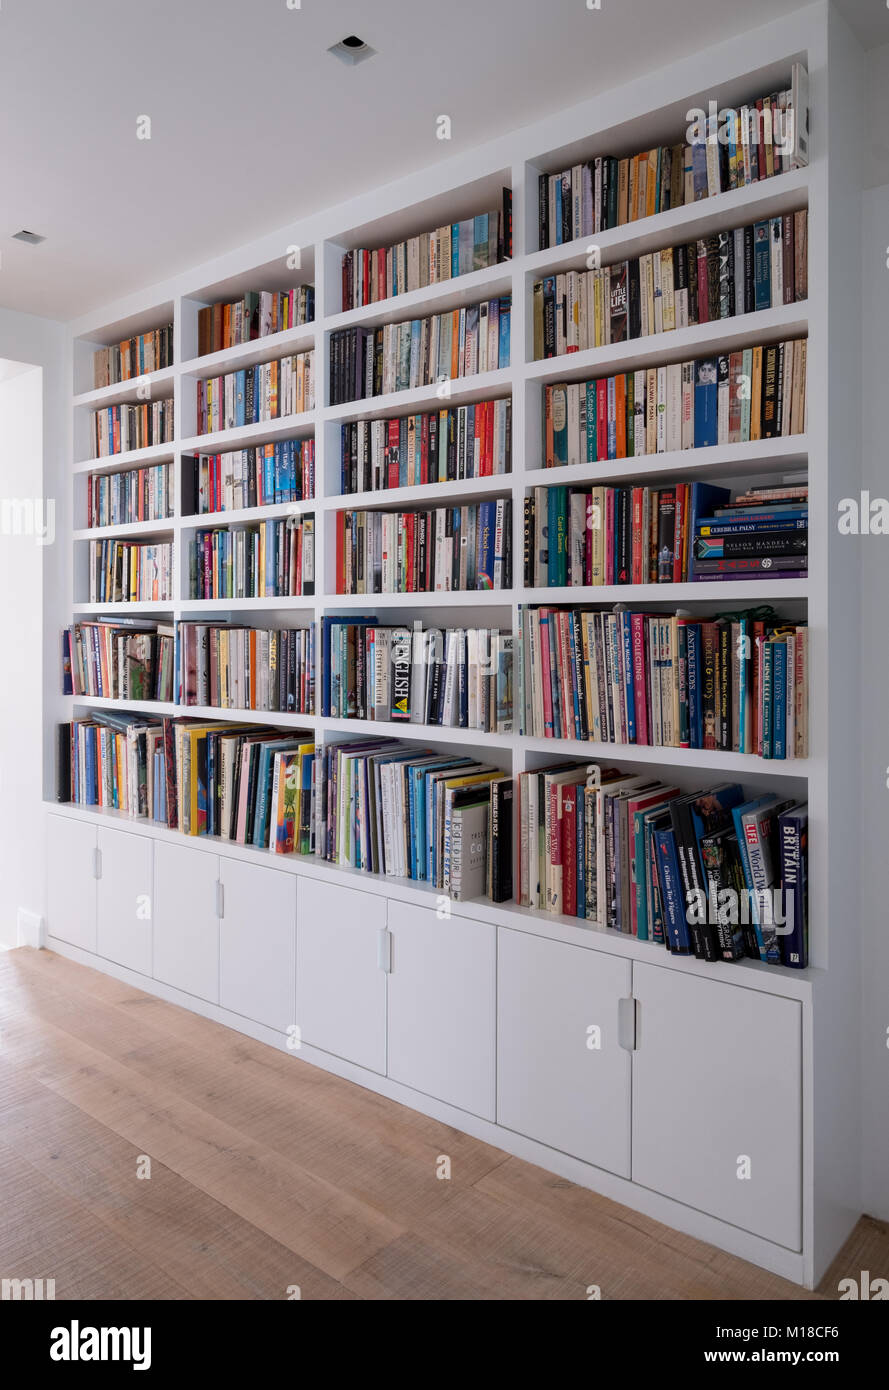 White Painted Bookshelves Full Of Books Covering Whole Wall With